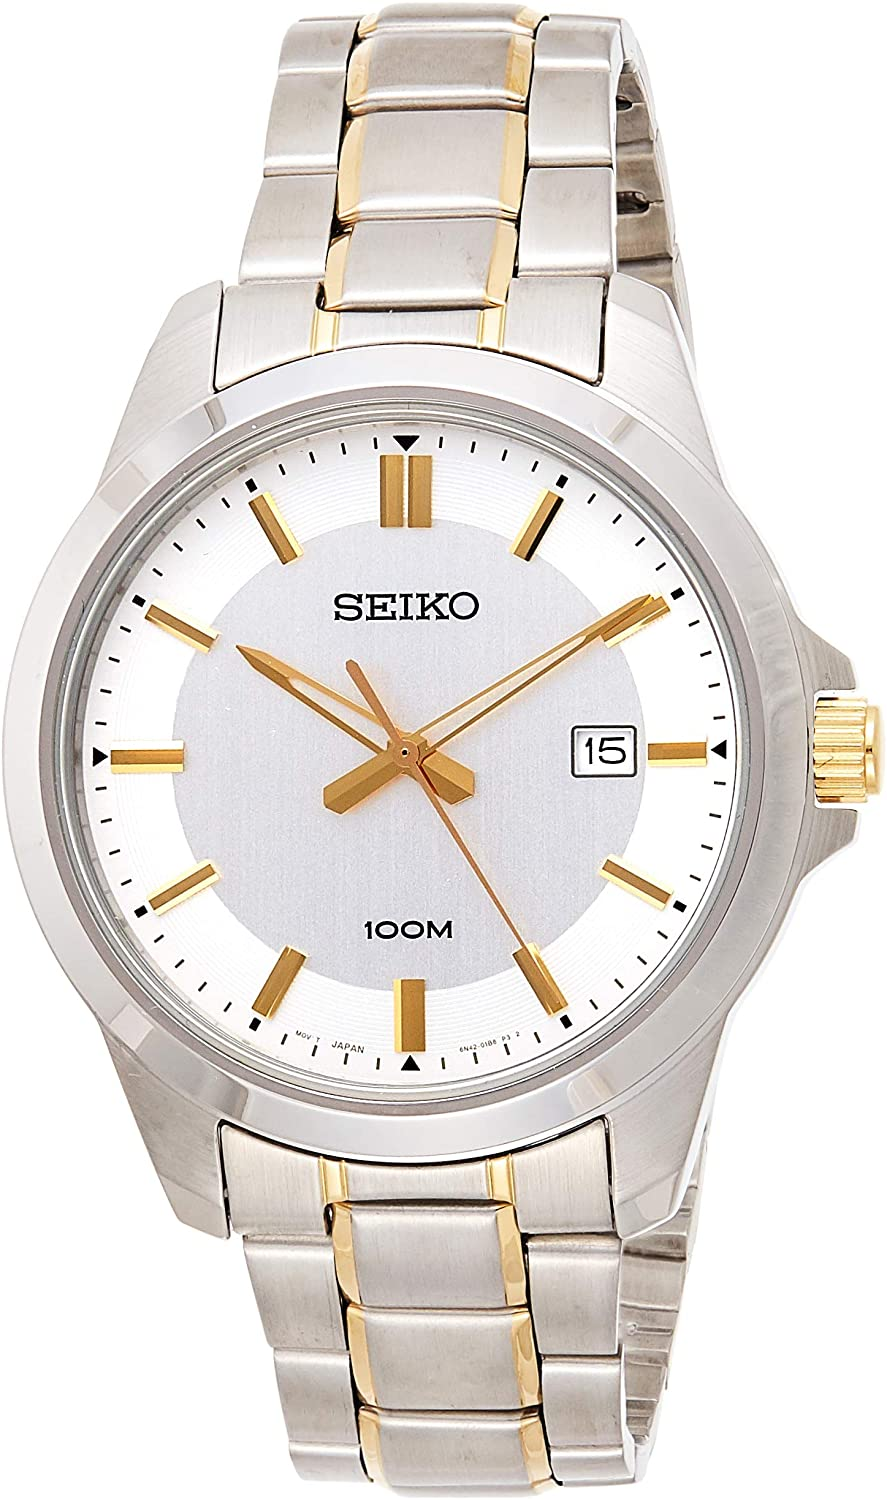 Seiko Gents Stainless Steel Band Watch SUR247P1